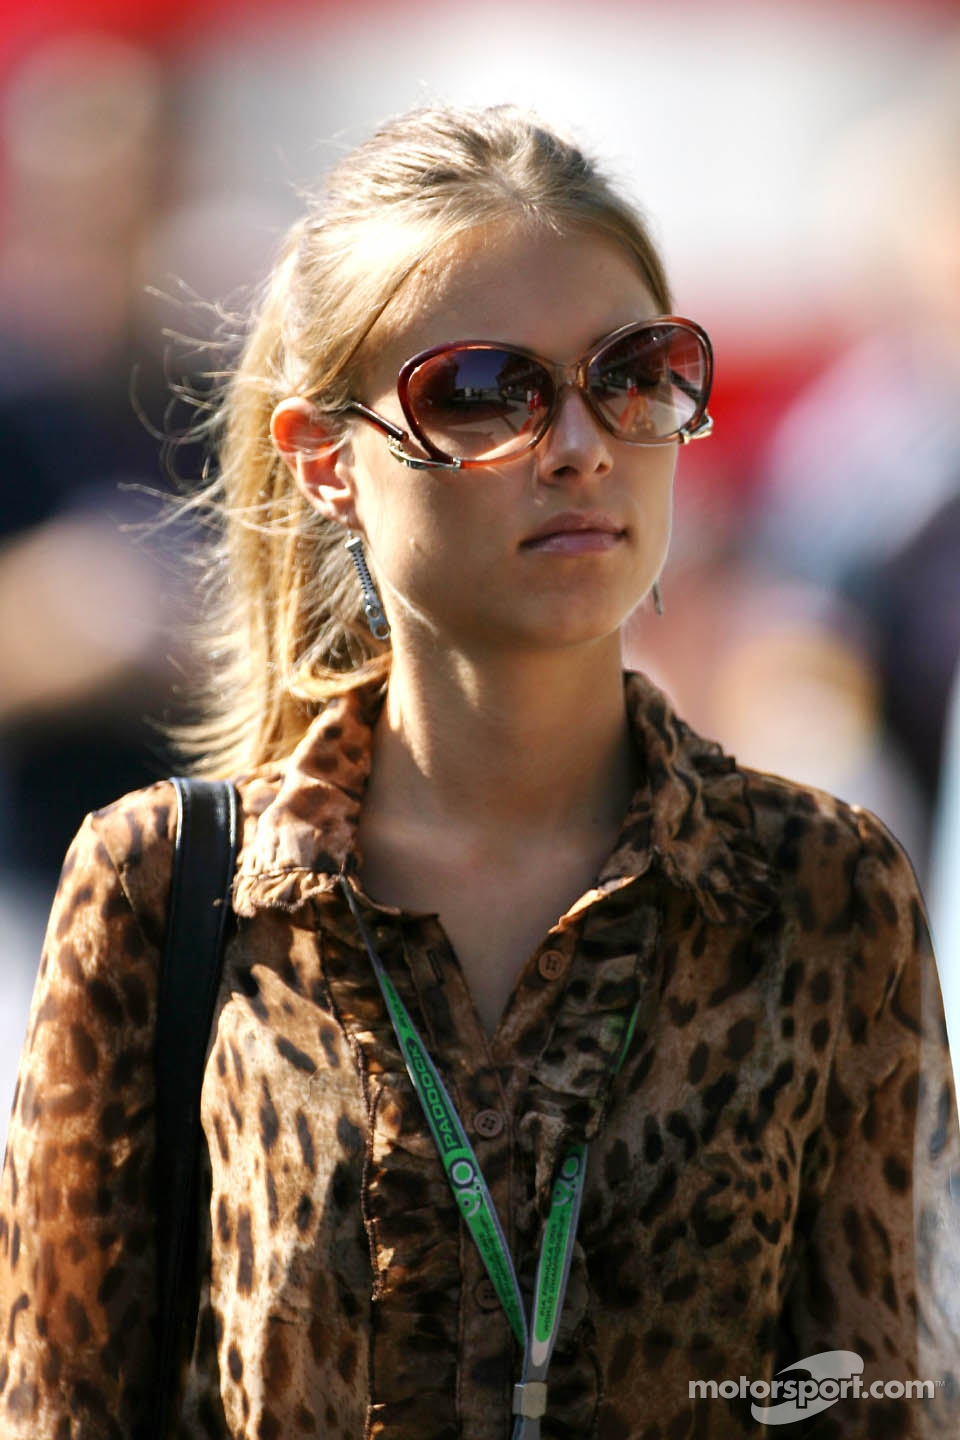 Dasha Kapustina, girlfriend of Fernando Alonso, Scuderia Ferrari